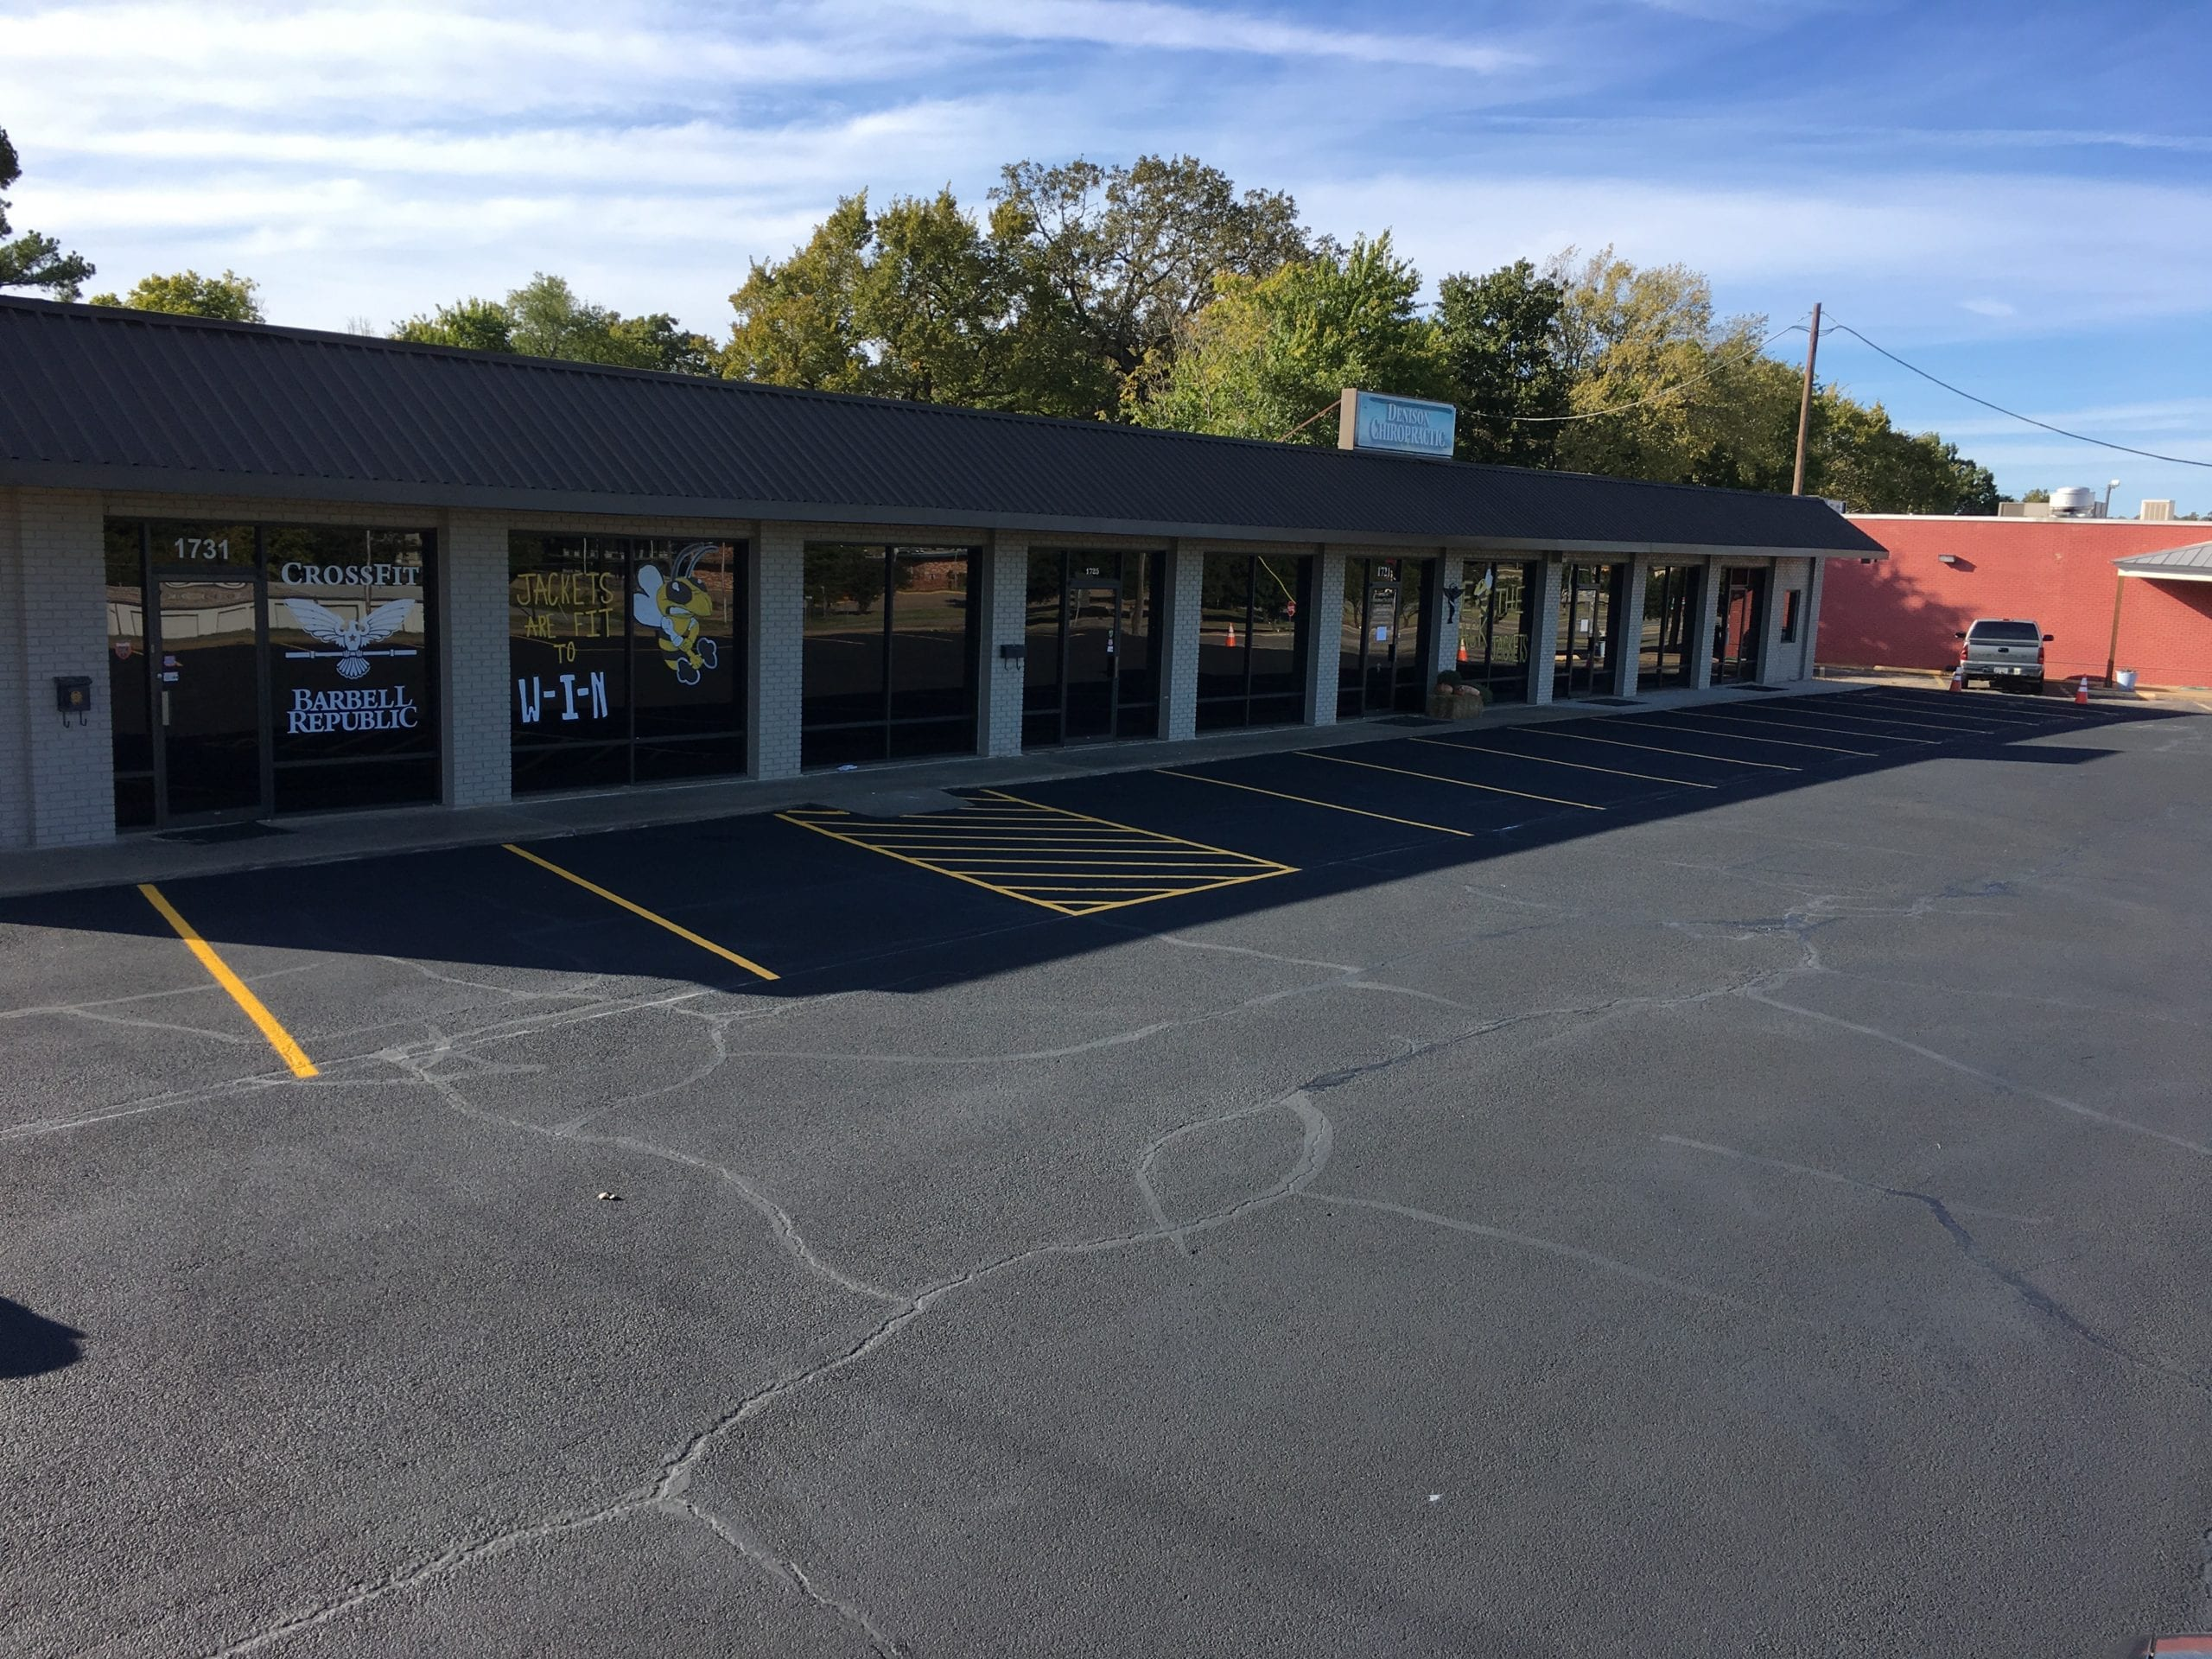 parking lot striping dallas tx commercial best company services near me texas parking lot striping company pictures 4.jpg